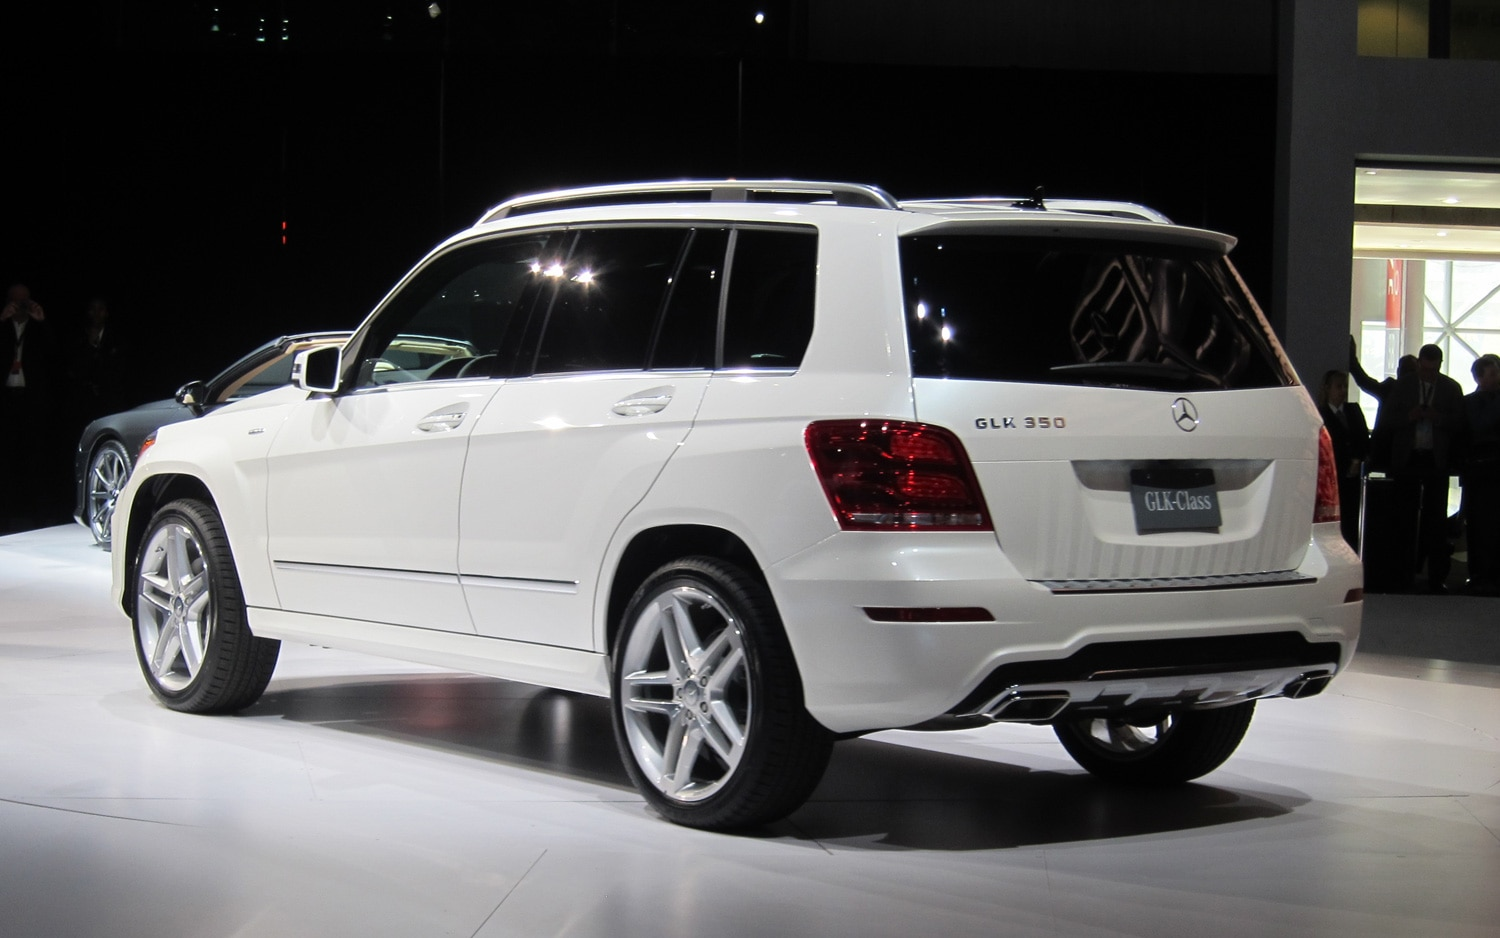 New york 2012 mercedes benz refreshes glk class adds for 2012 mercedes benz glk class